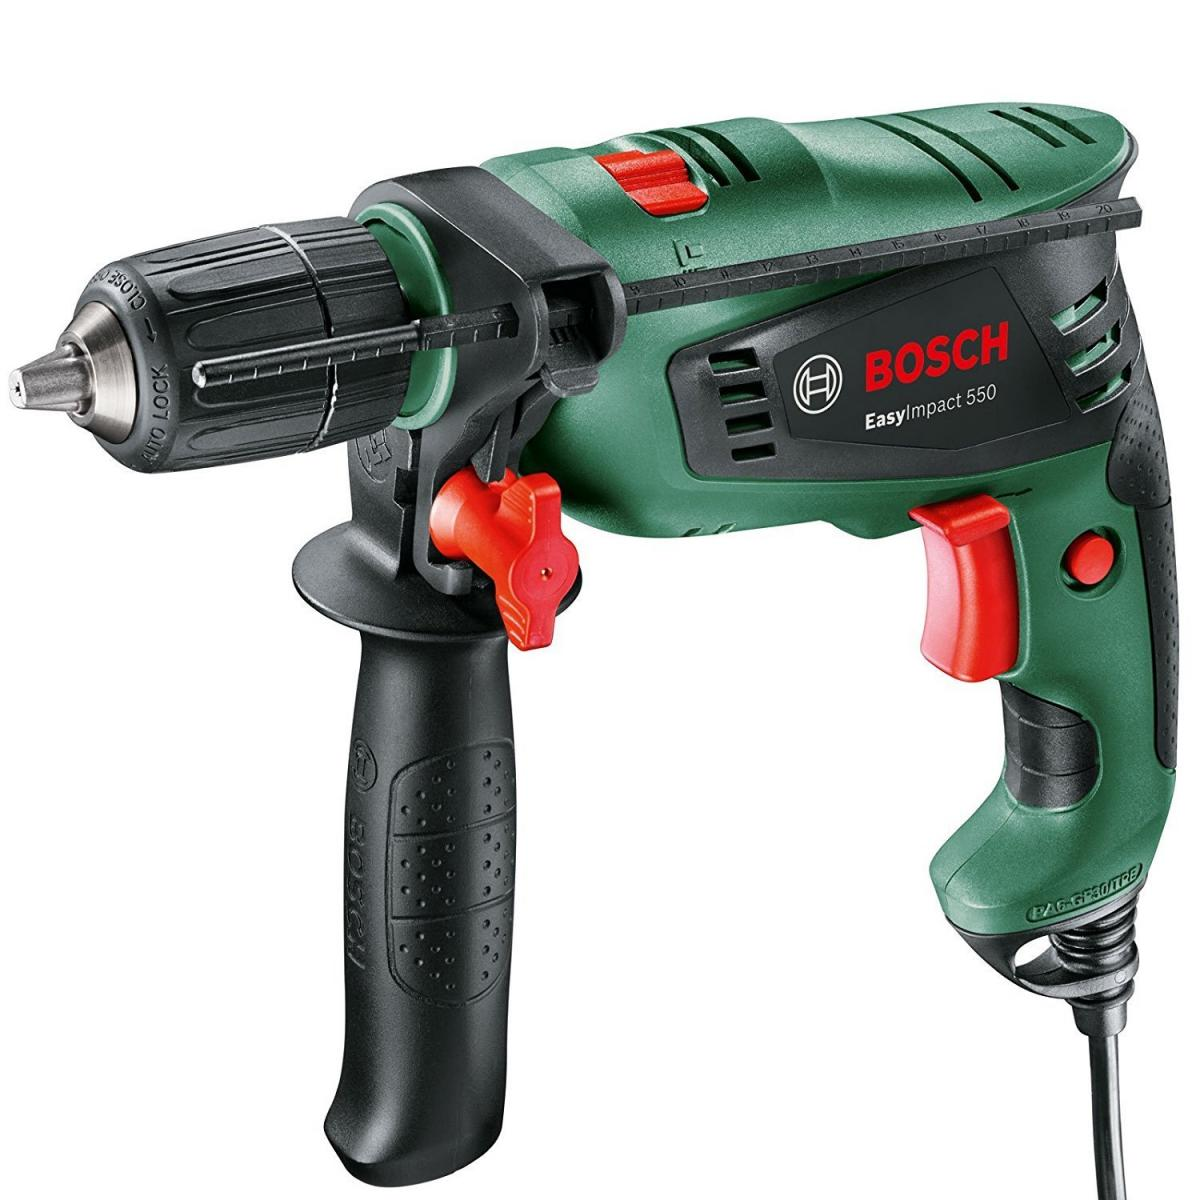 EasyImpact 550 with Drill Assistant – Now Only £55.00